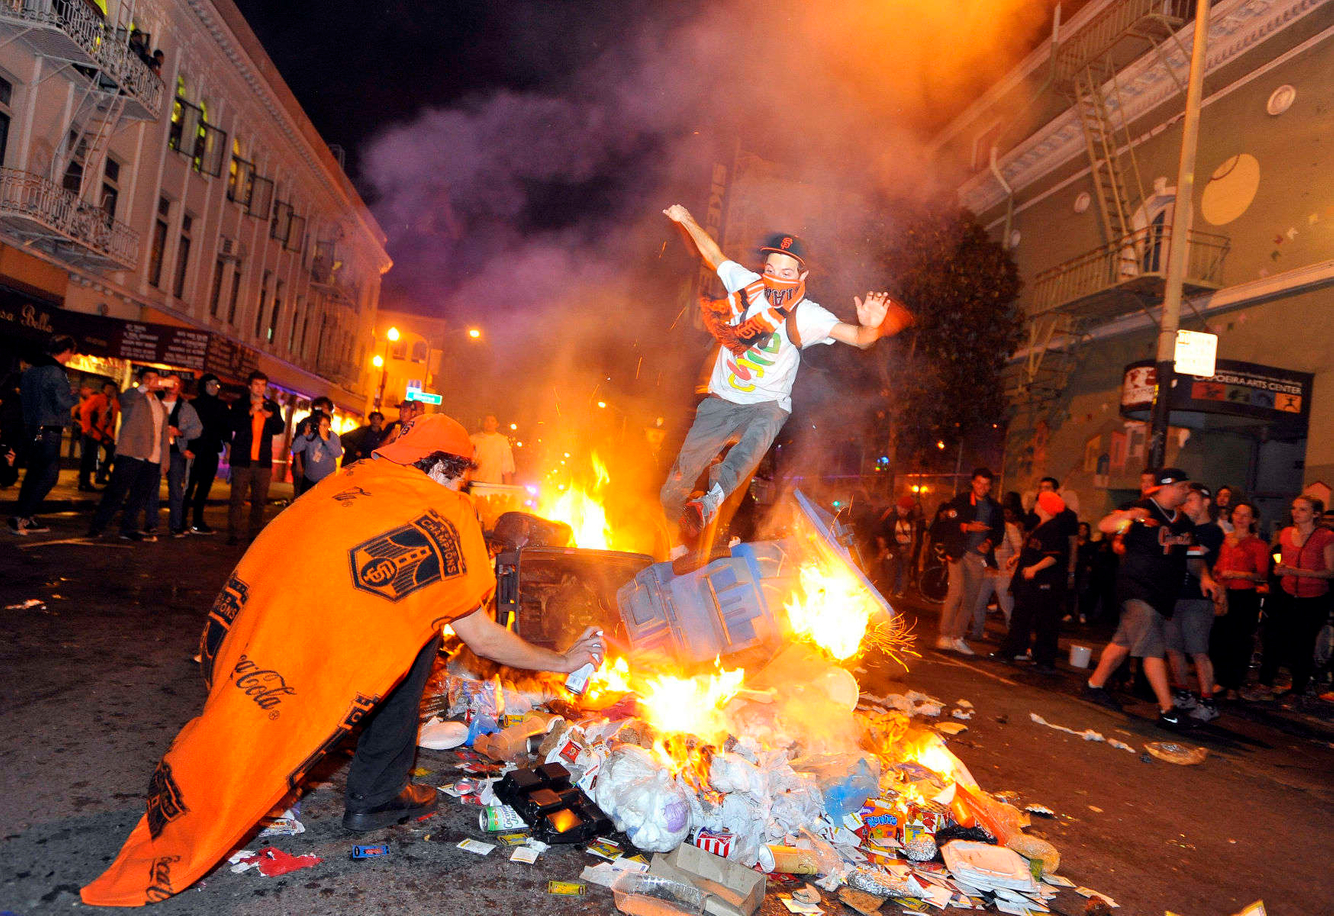 WORLD SERIES REACTIONS: A man jumps over burning trash while vandalism ensues after the Giants beat the Royals in the 2014 World Series in San Francisco.